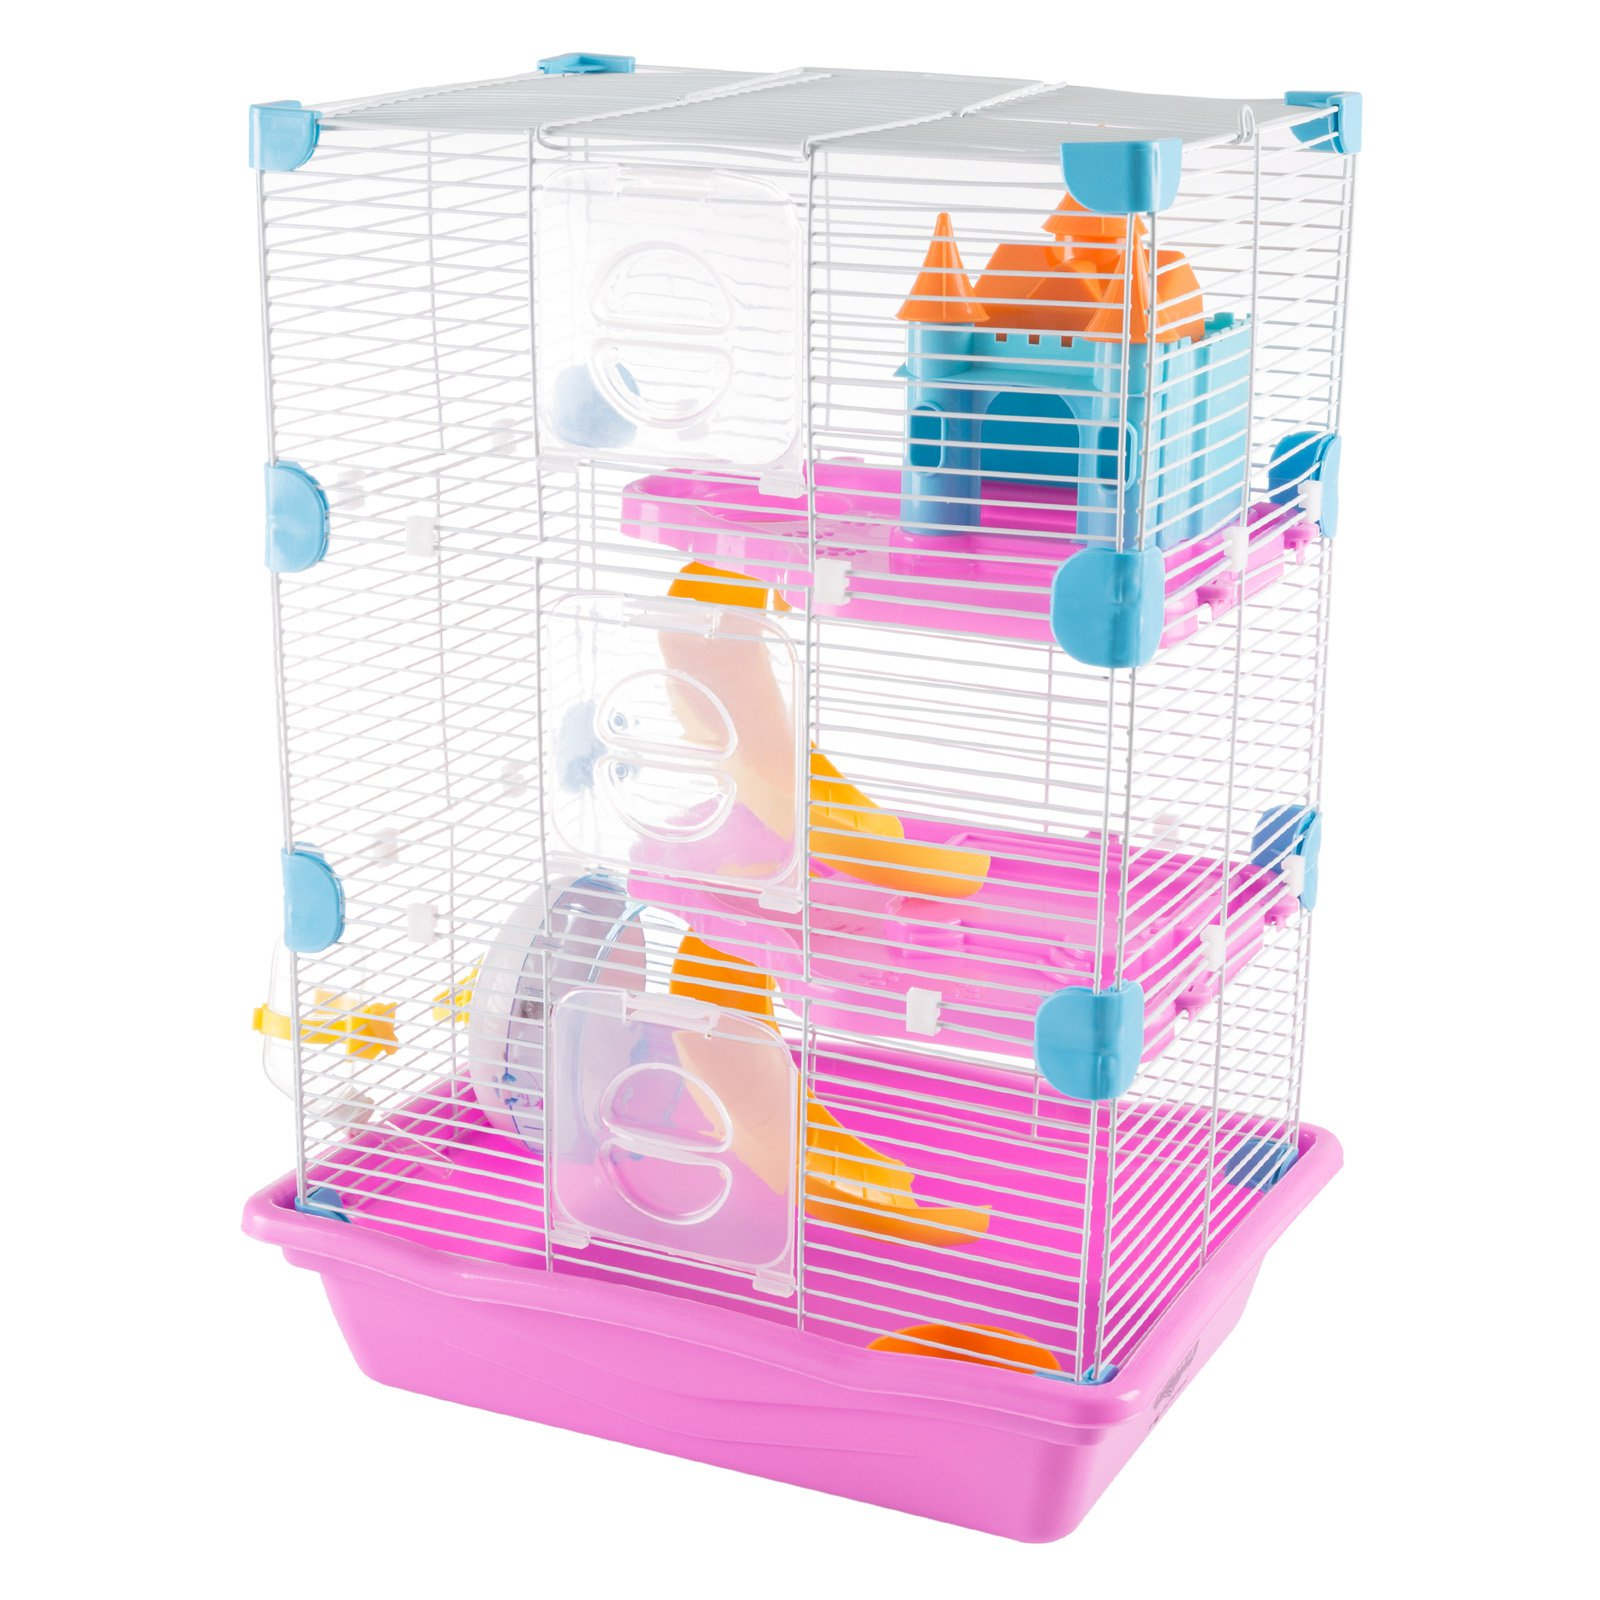 Petmaker 3 Story Hamster Cage Habitat with Attachments and Accessories